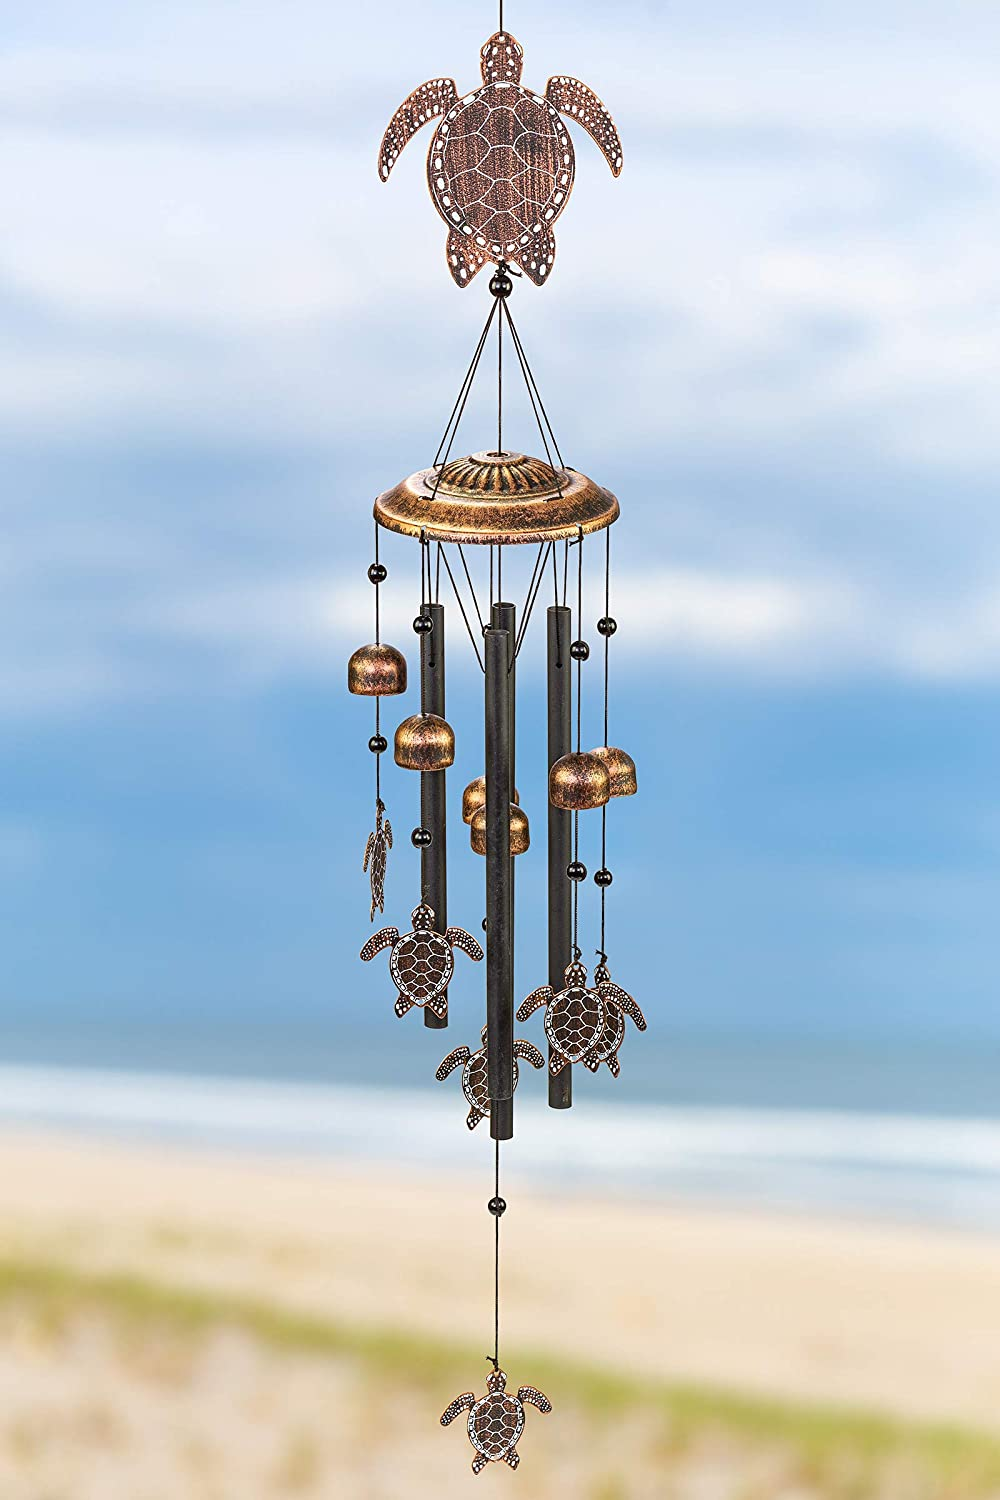 VP Home Sea Turtles Outdoor Garden Decor Wind Chime (Rustic Copper)